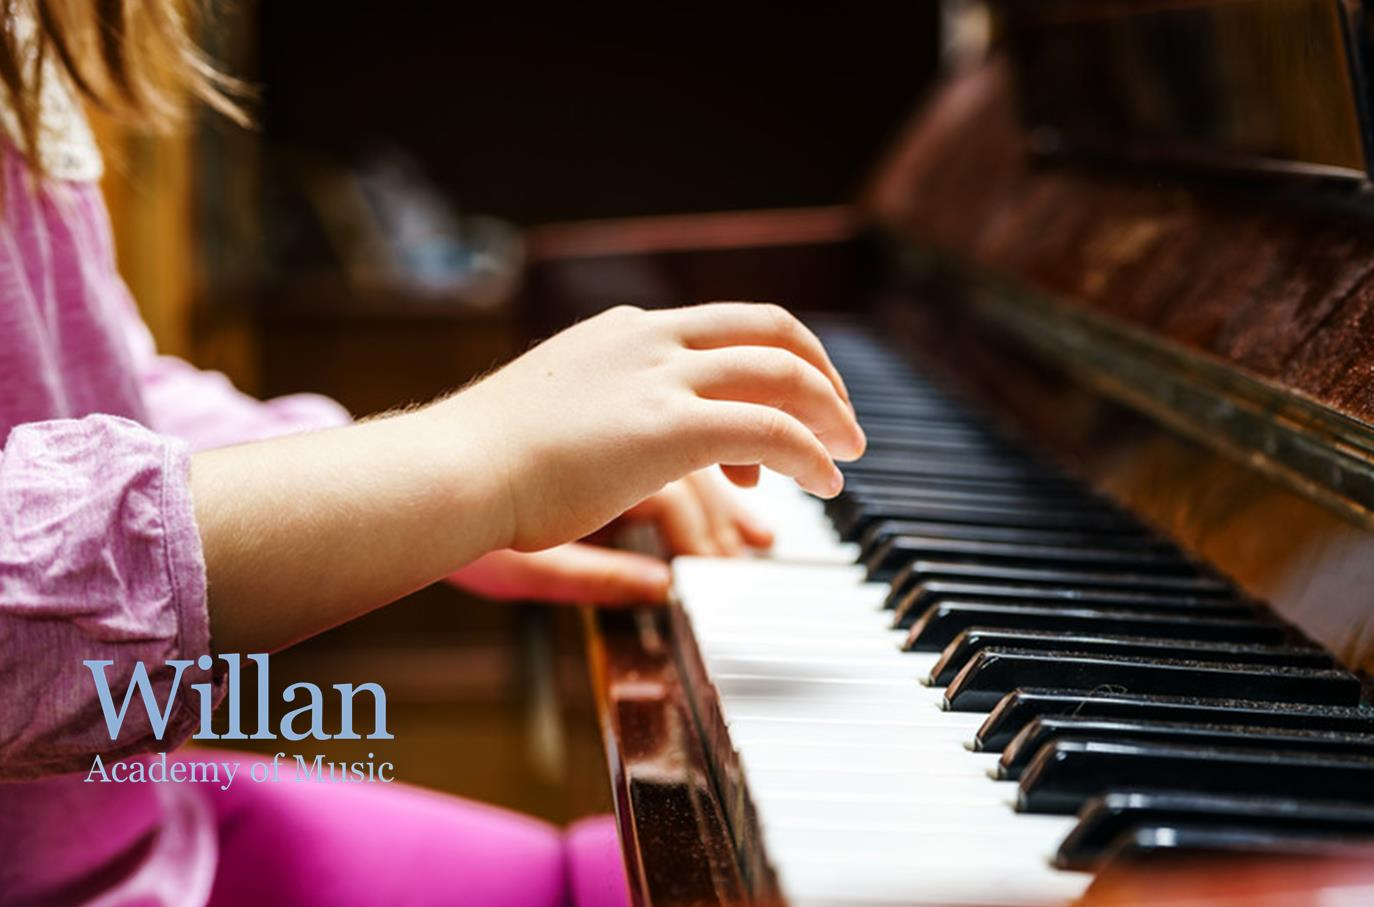 The Three Common Mistakes That Most Beginner Pianists Do, Piano lessons nyc, Manhattan, Brooklyn, Queens, Harlem, Washington Heights, Piano lessons near me